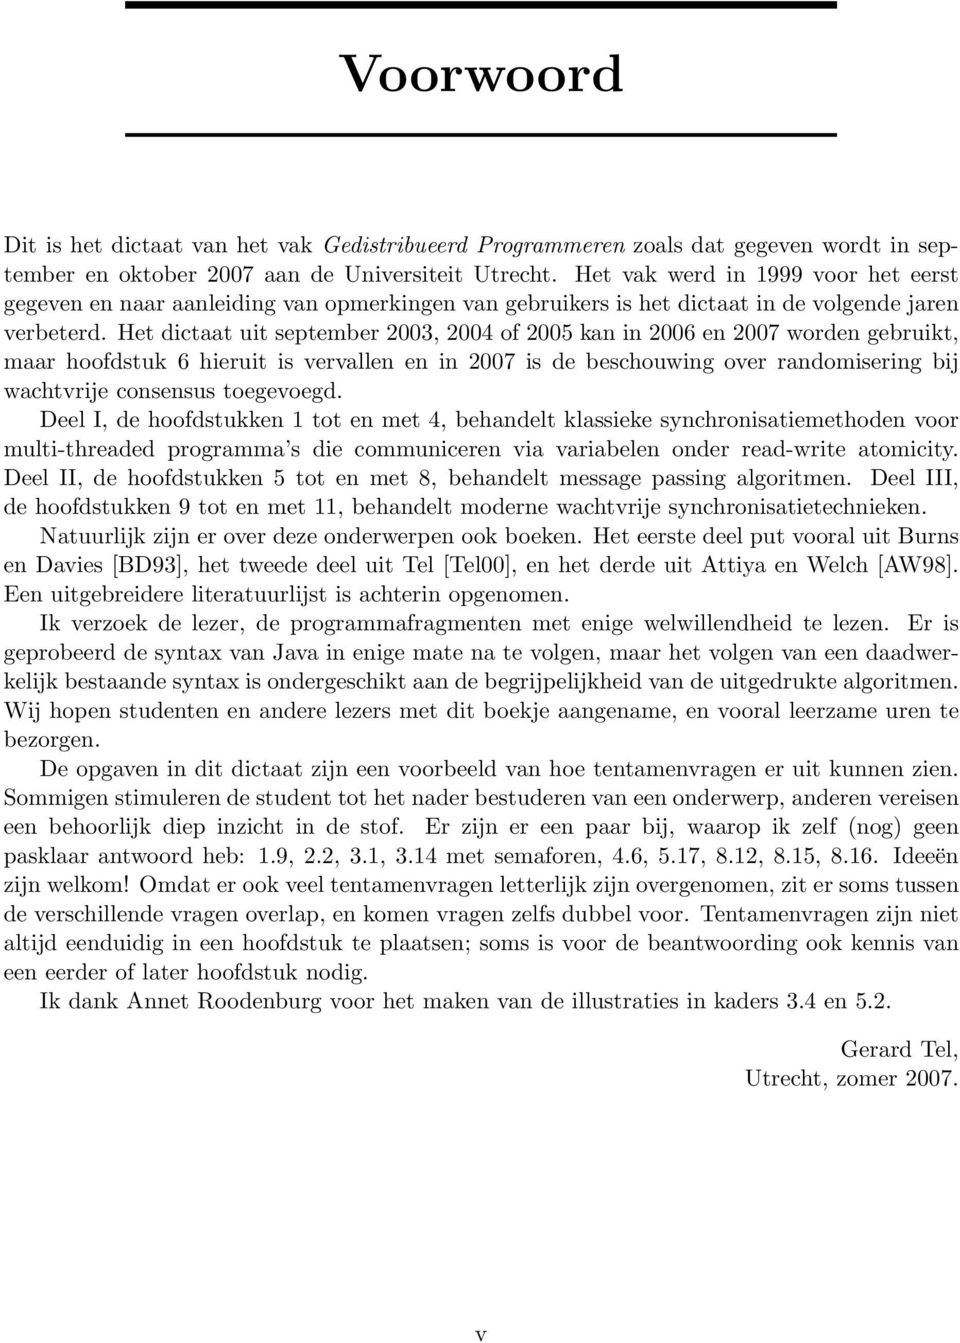 Het dictaat uit september 2003, 2004 of 2005 kan in 2006 en 2007 worden gebruikt, maar hoofdstuk 6 hieruit is vervallen en in 2007 is de beschouwing over randomisering bij wachtvrije consensus